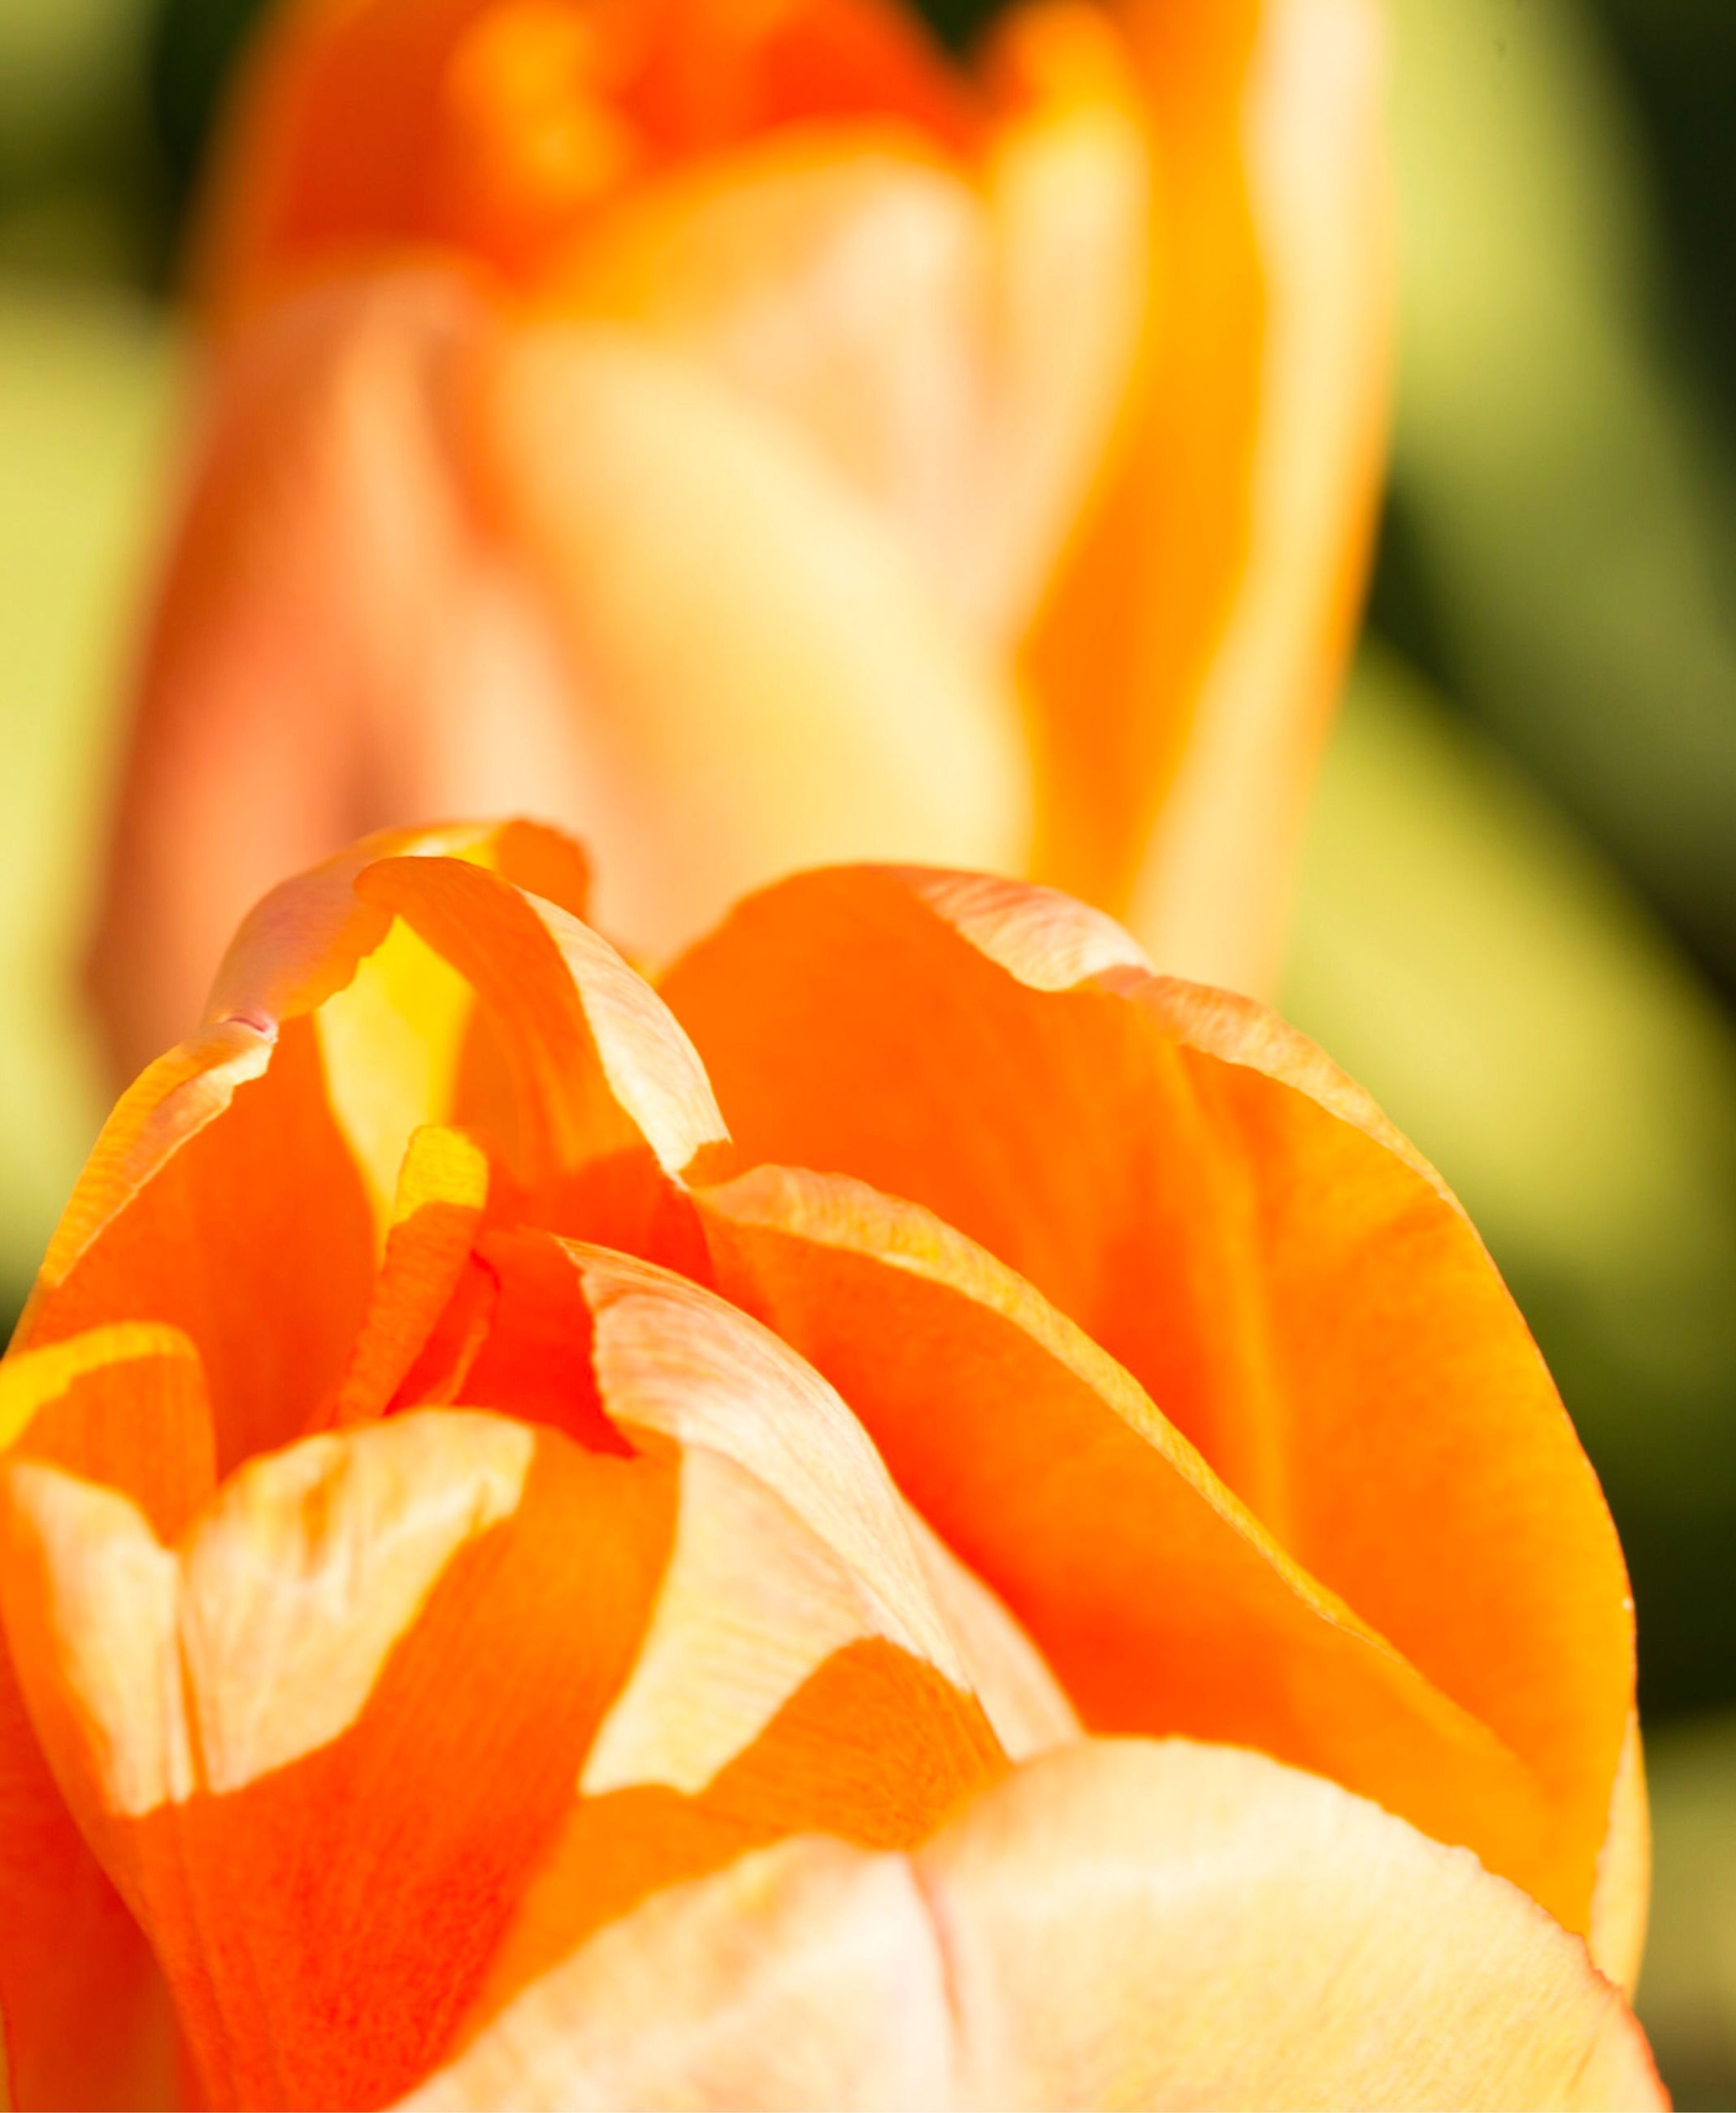 flower, fragility, beauty in nature, close-up, nature, freshness, orange color, petal, flower head, growth, no people, outdoors, day